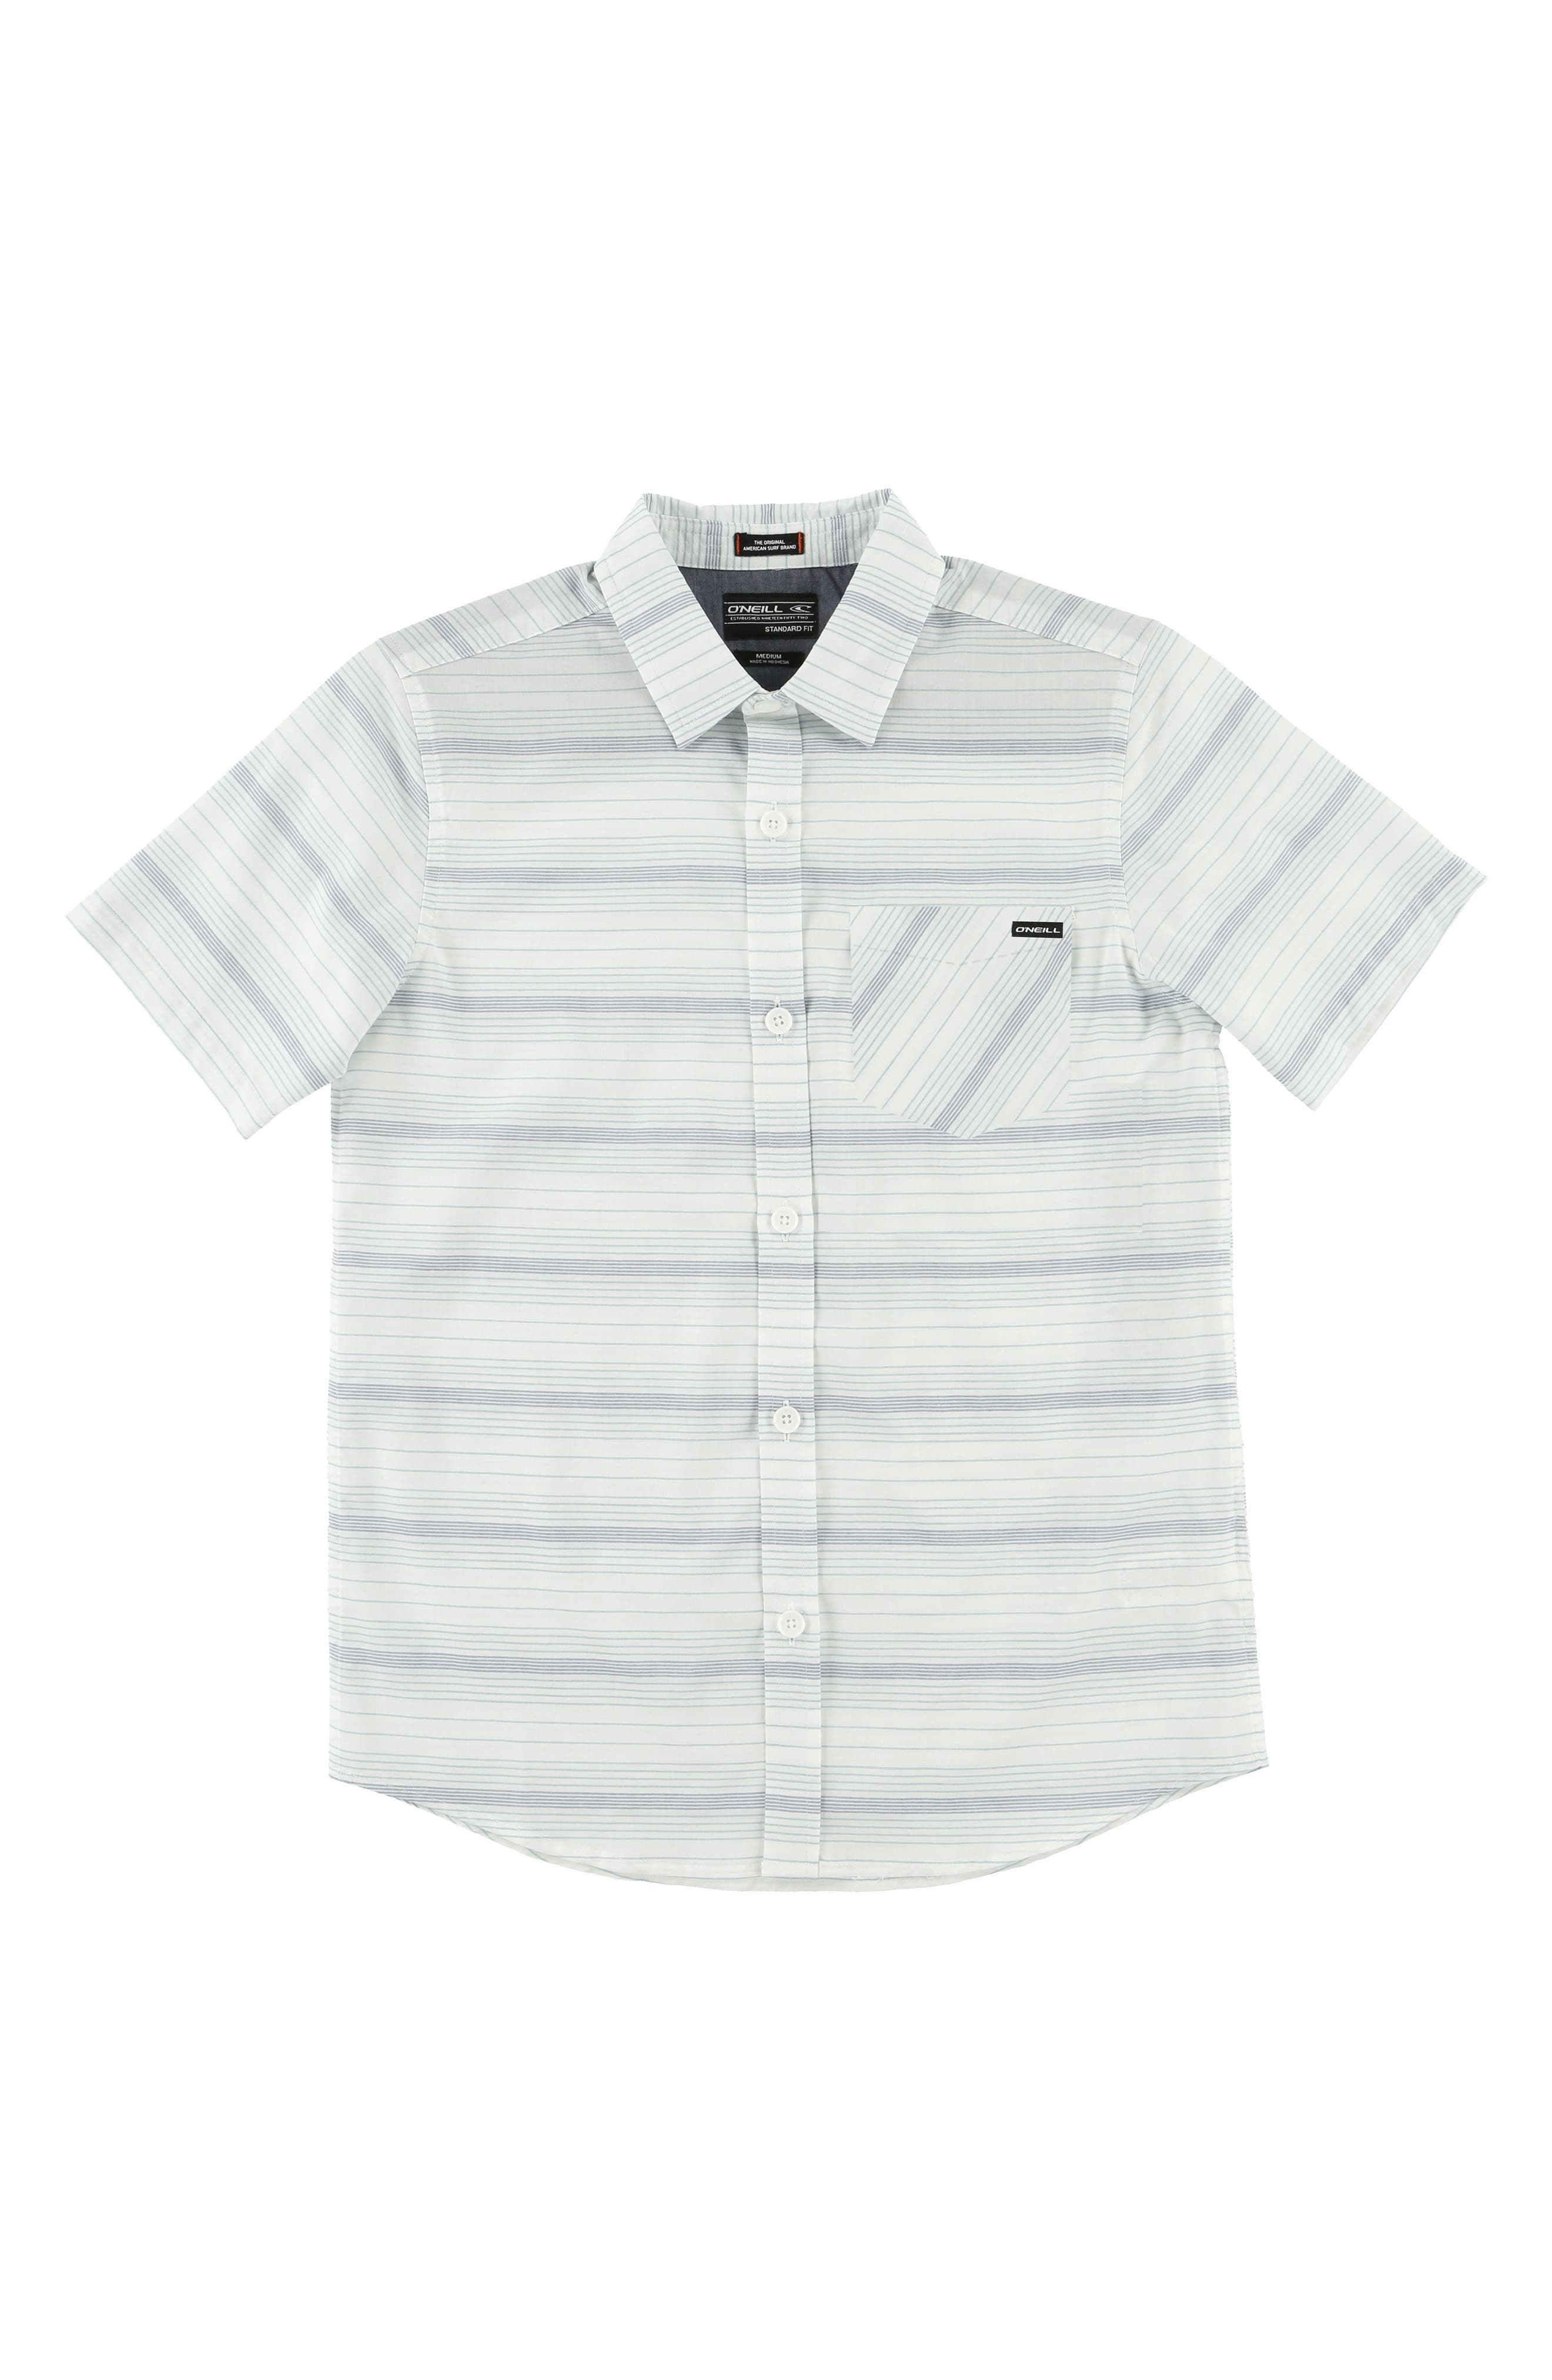 O'Neill Stripe Woven Shirt (Little Boys)